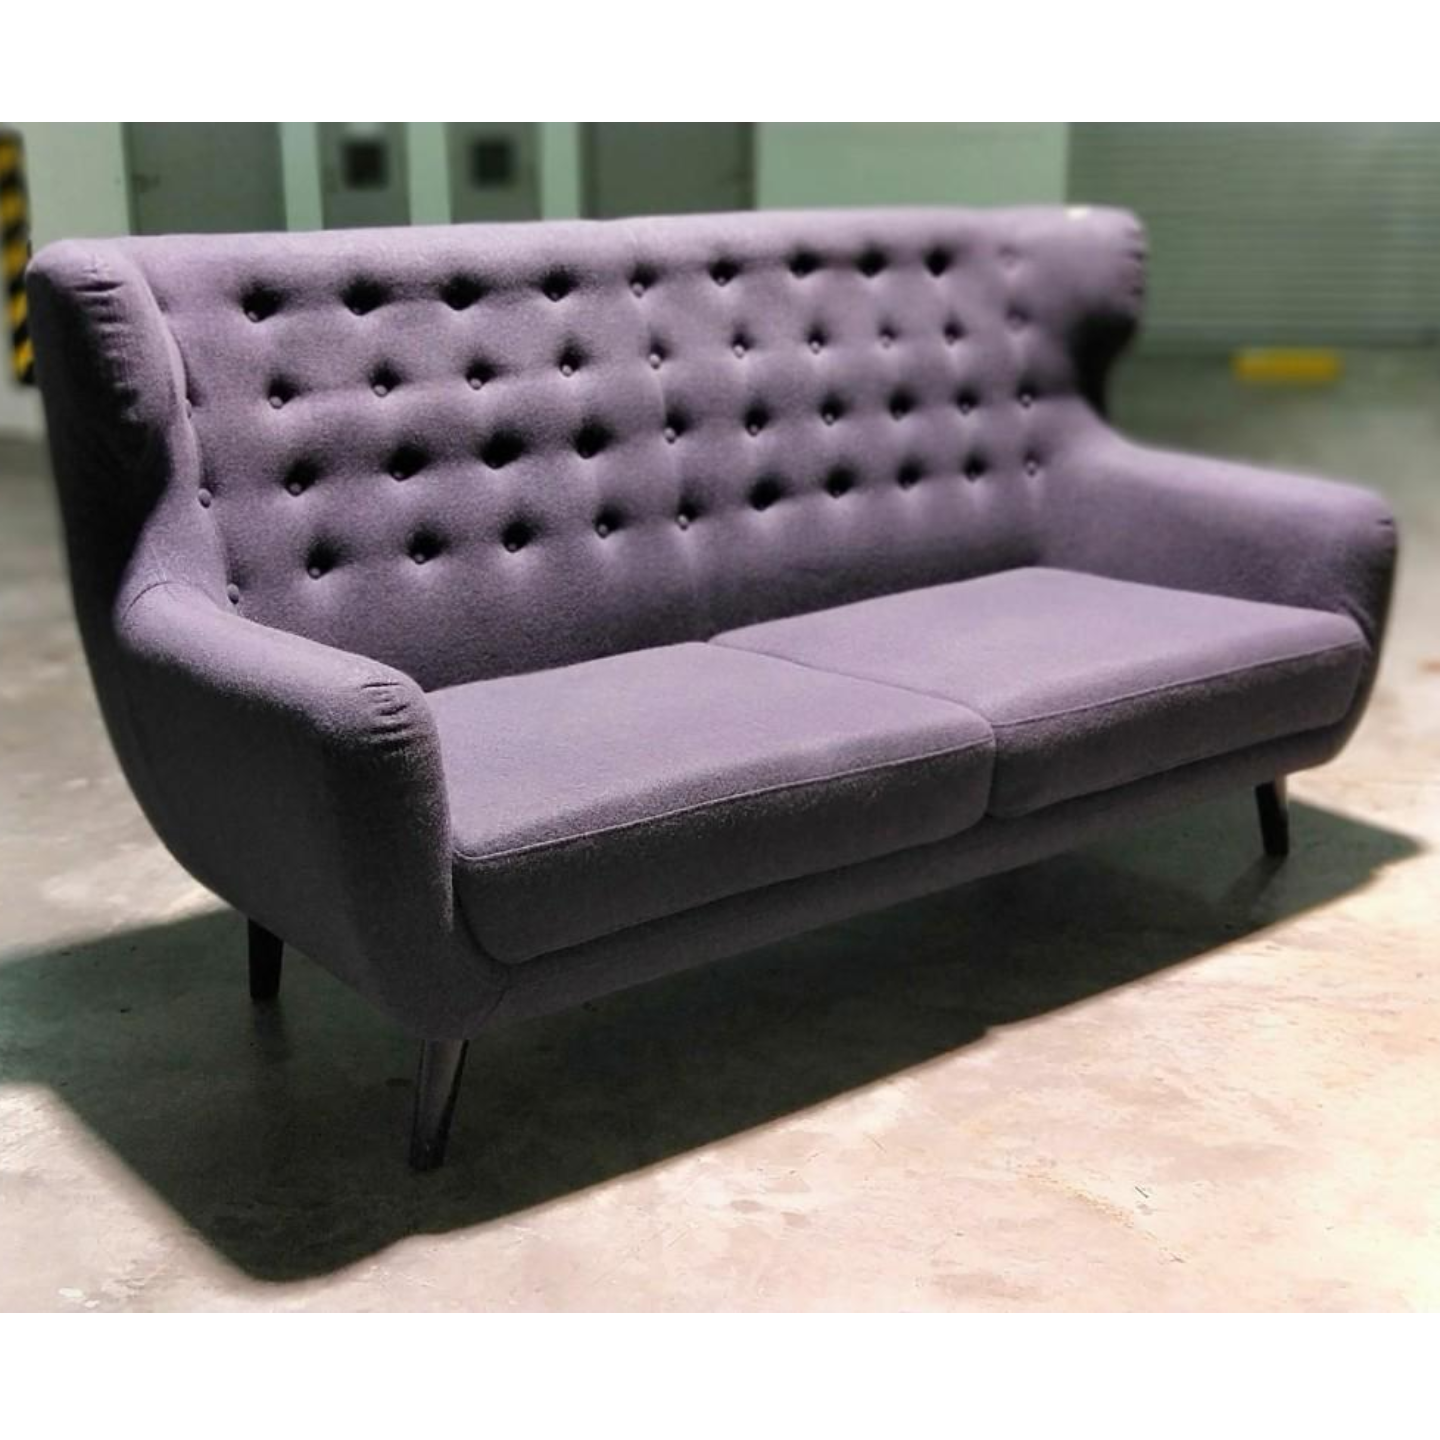 SCAN X-WINGBACK Designer 3 Seater Sofa in CHARCOAL GREY